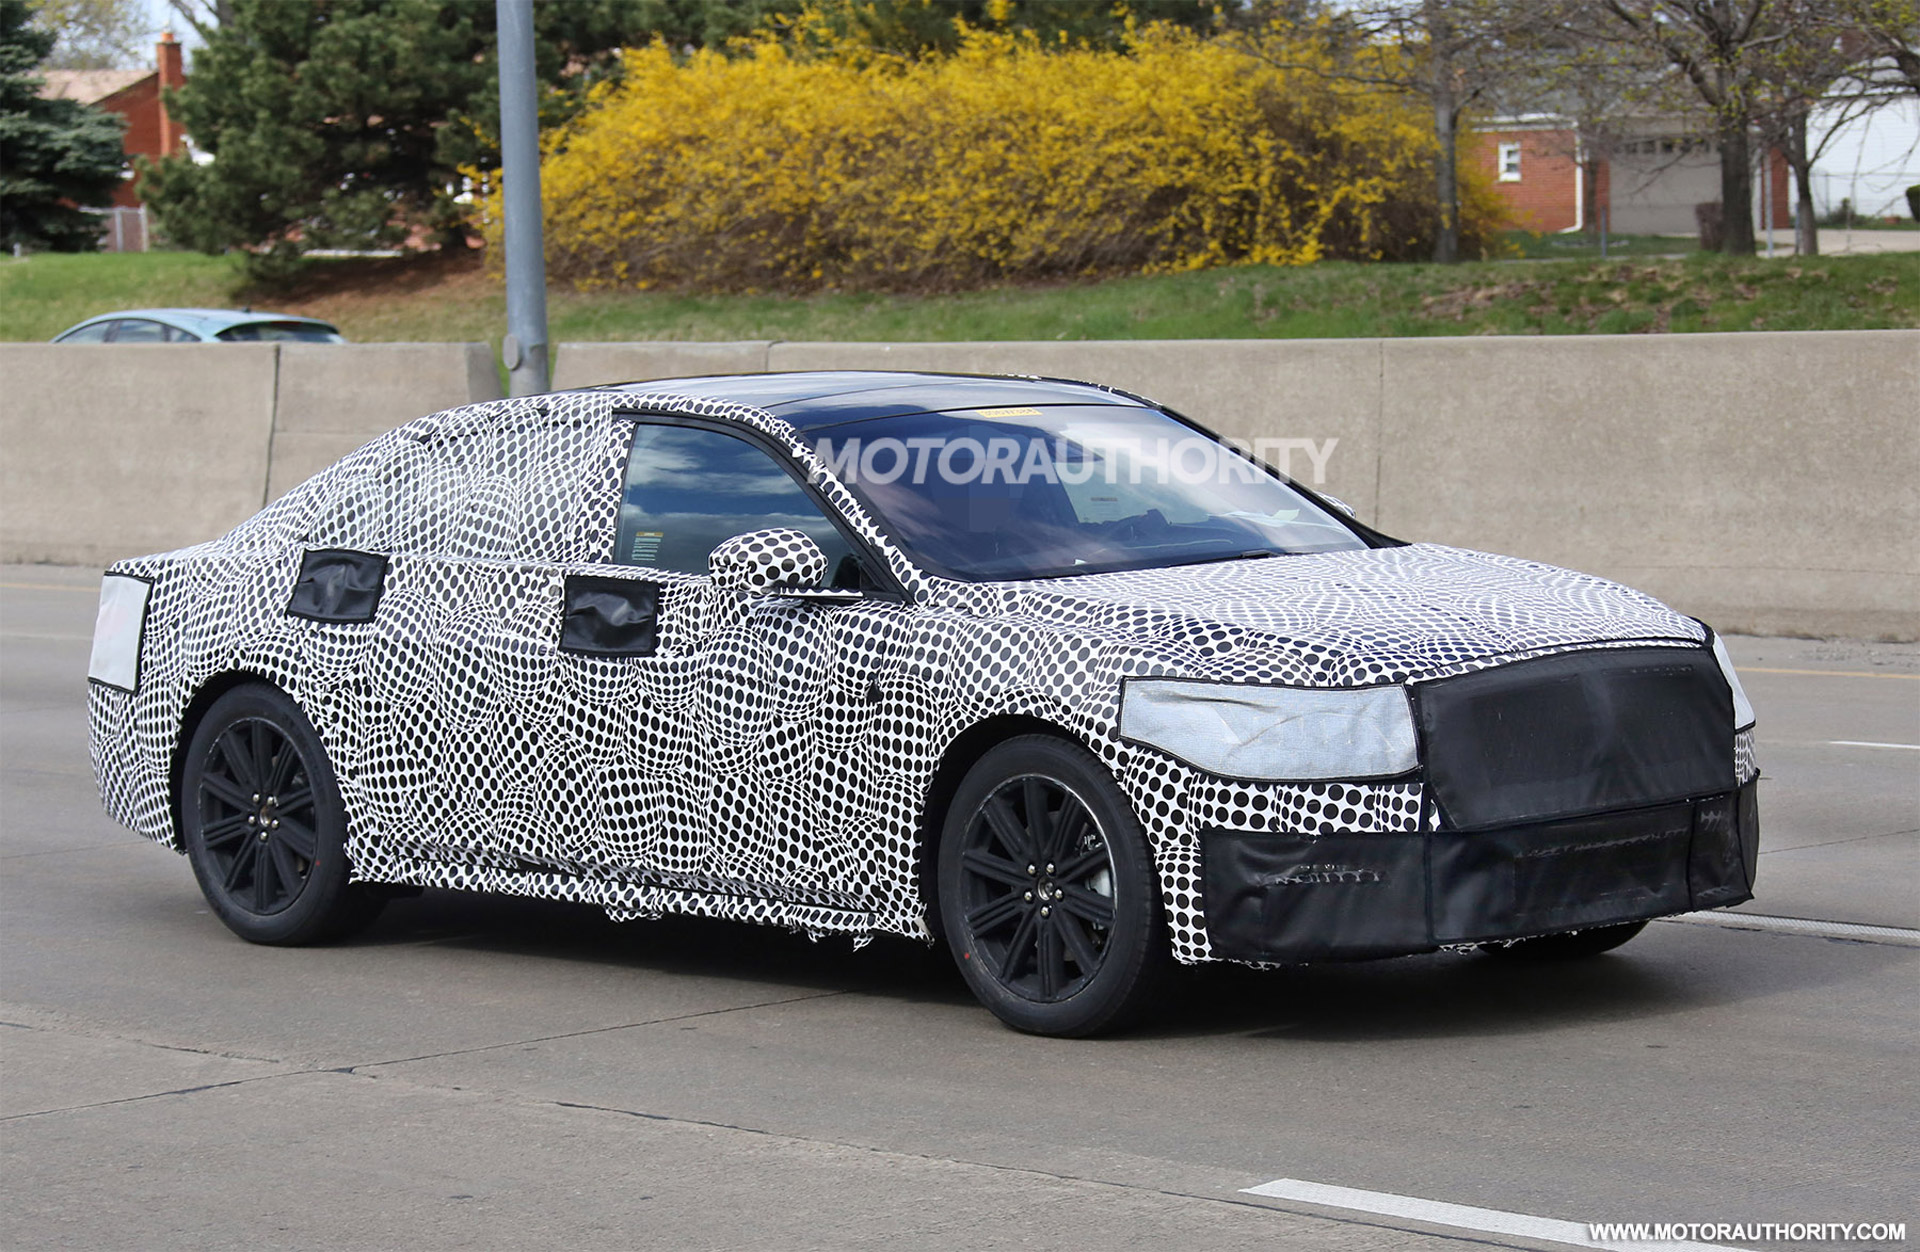 2016 - [Lincoln] Continental 2016-lincoln-continental-spy-shots--image-via-s-baldauf-sb-medien_100508900_h